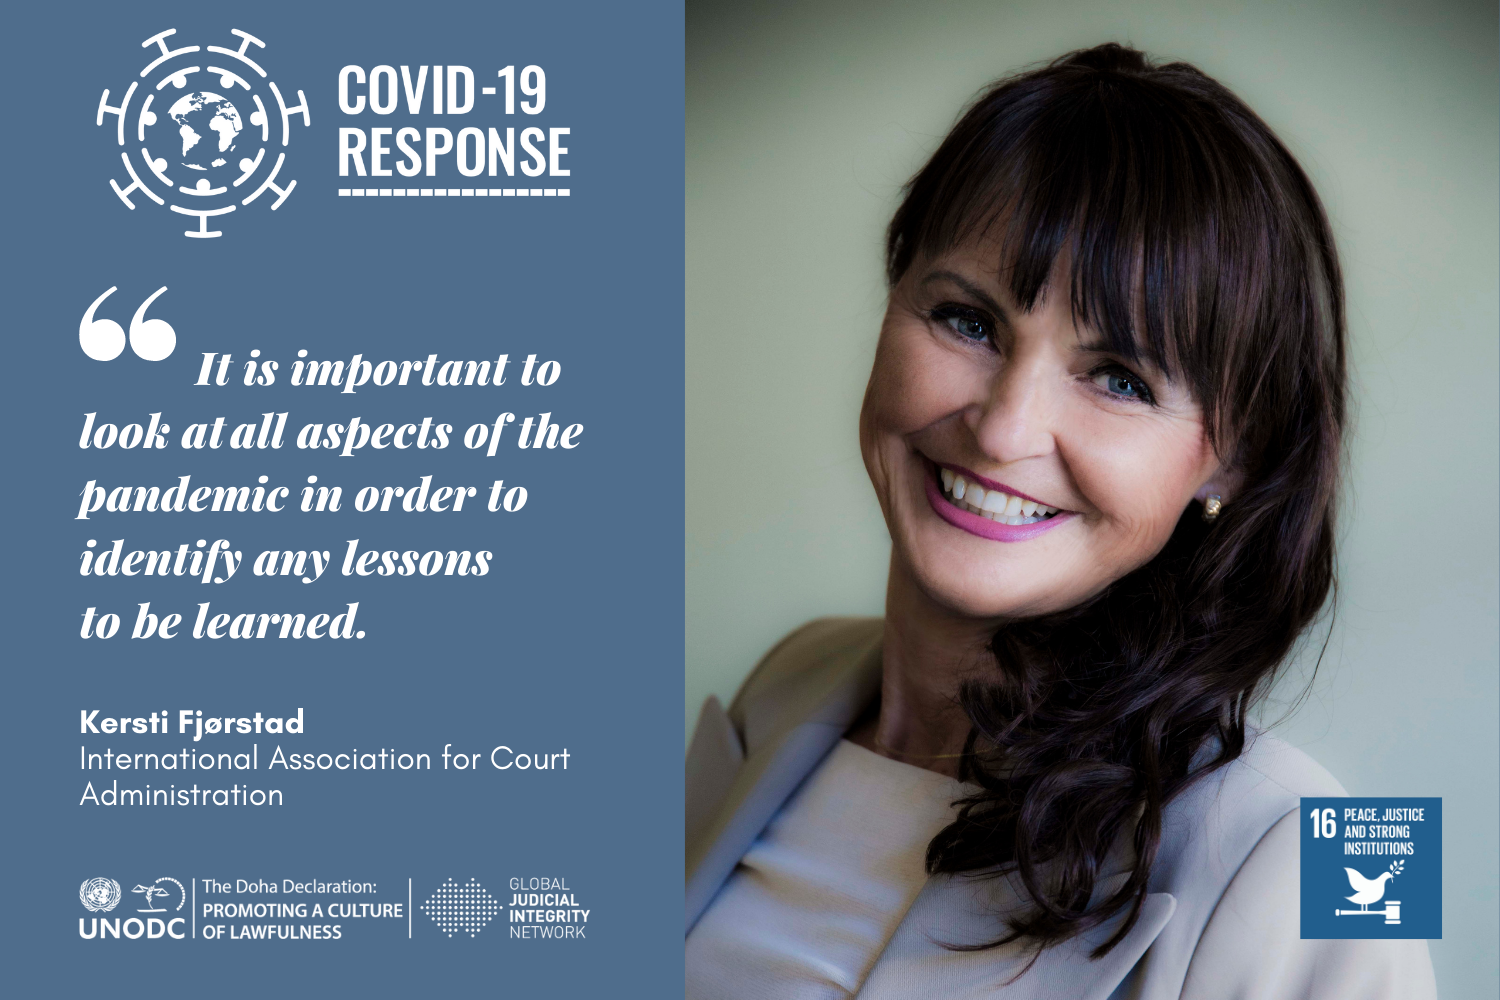 Access to Justice in Relation to COVID-19: A Norwegian Perspective on an Issue of Judicial Integrity